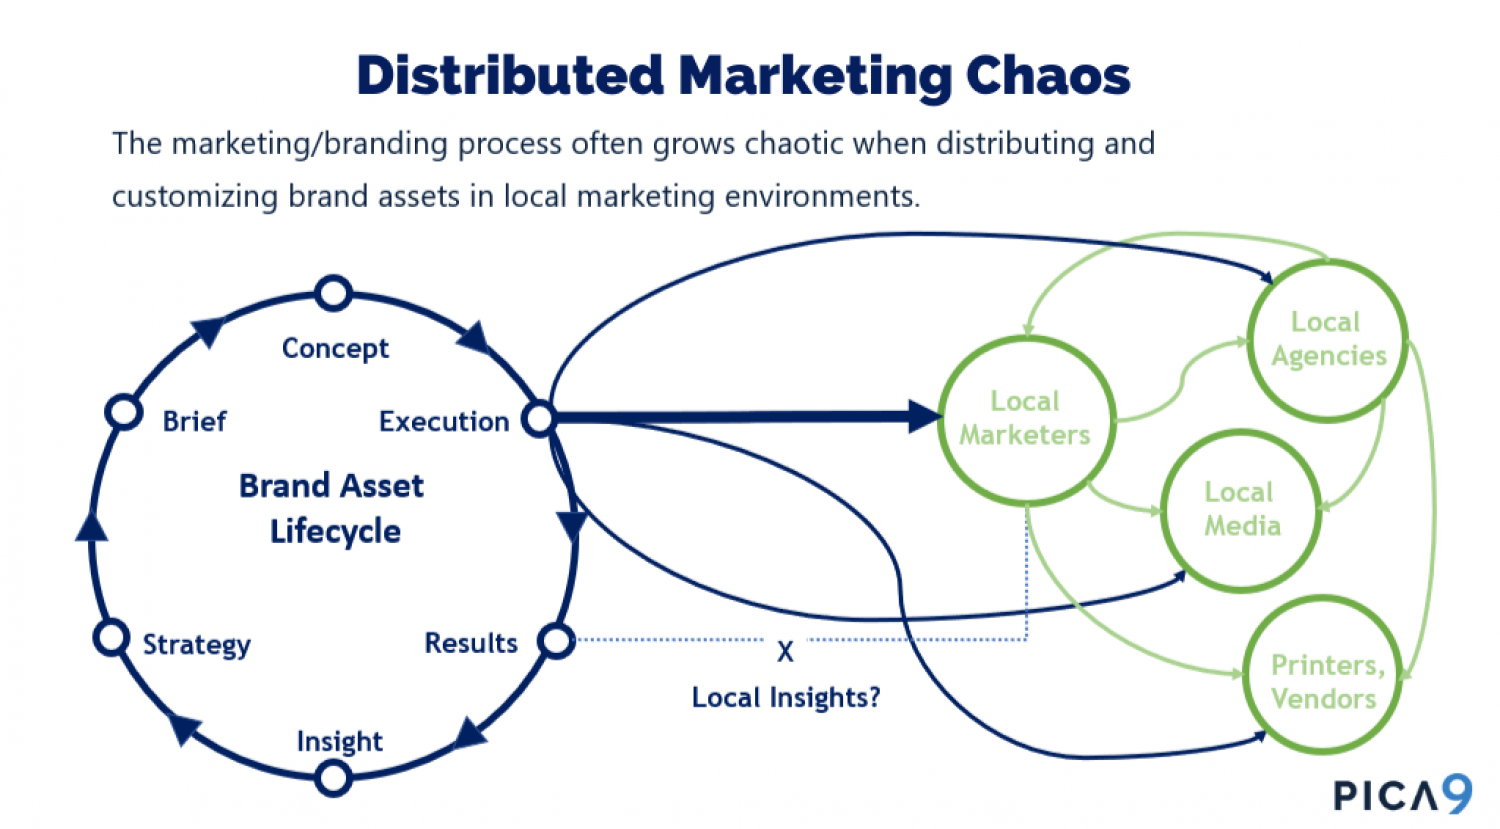 Distributed Marketing Chaos Infographic